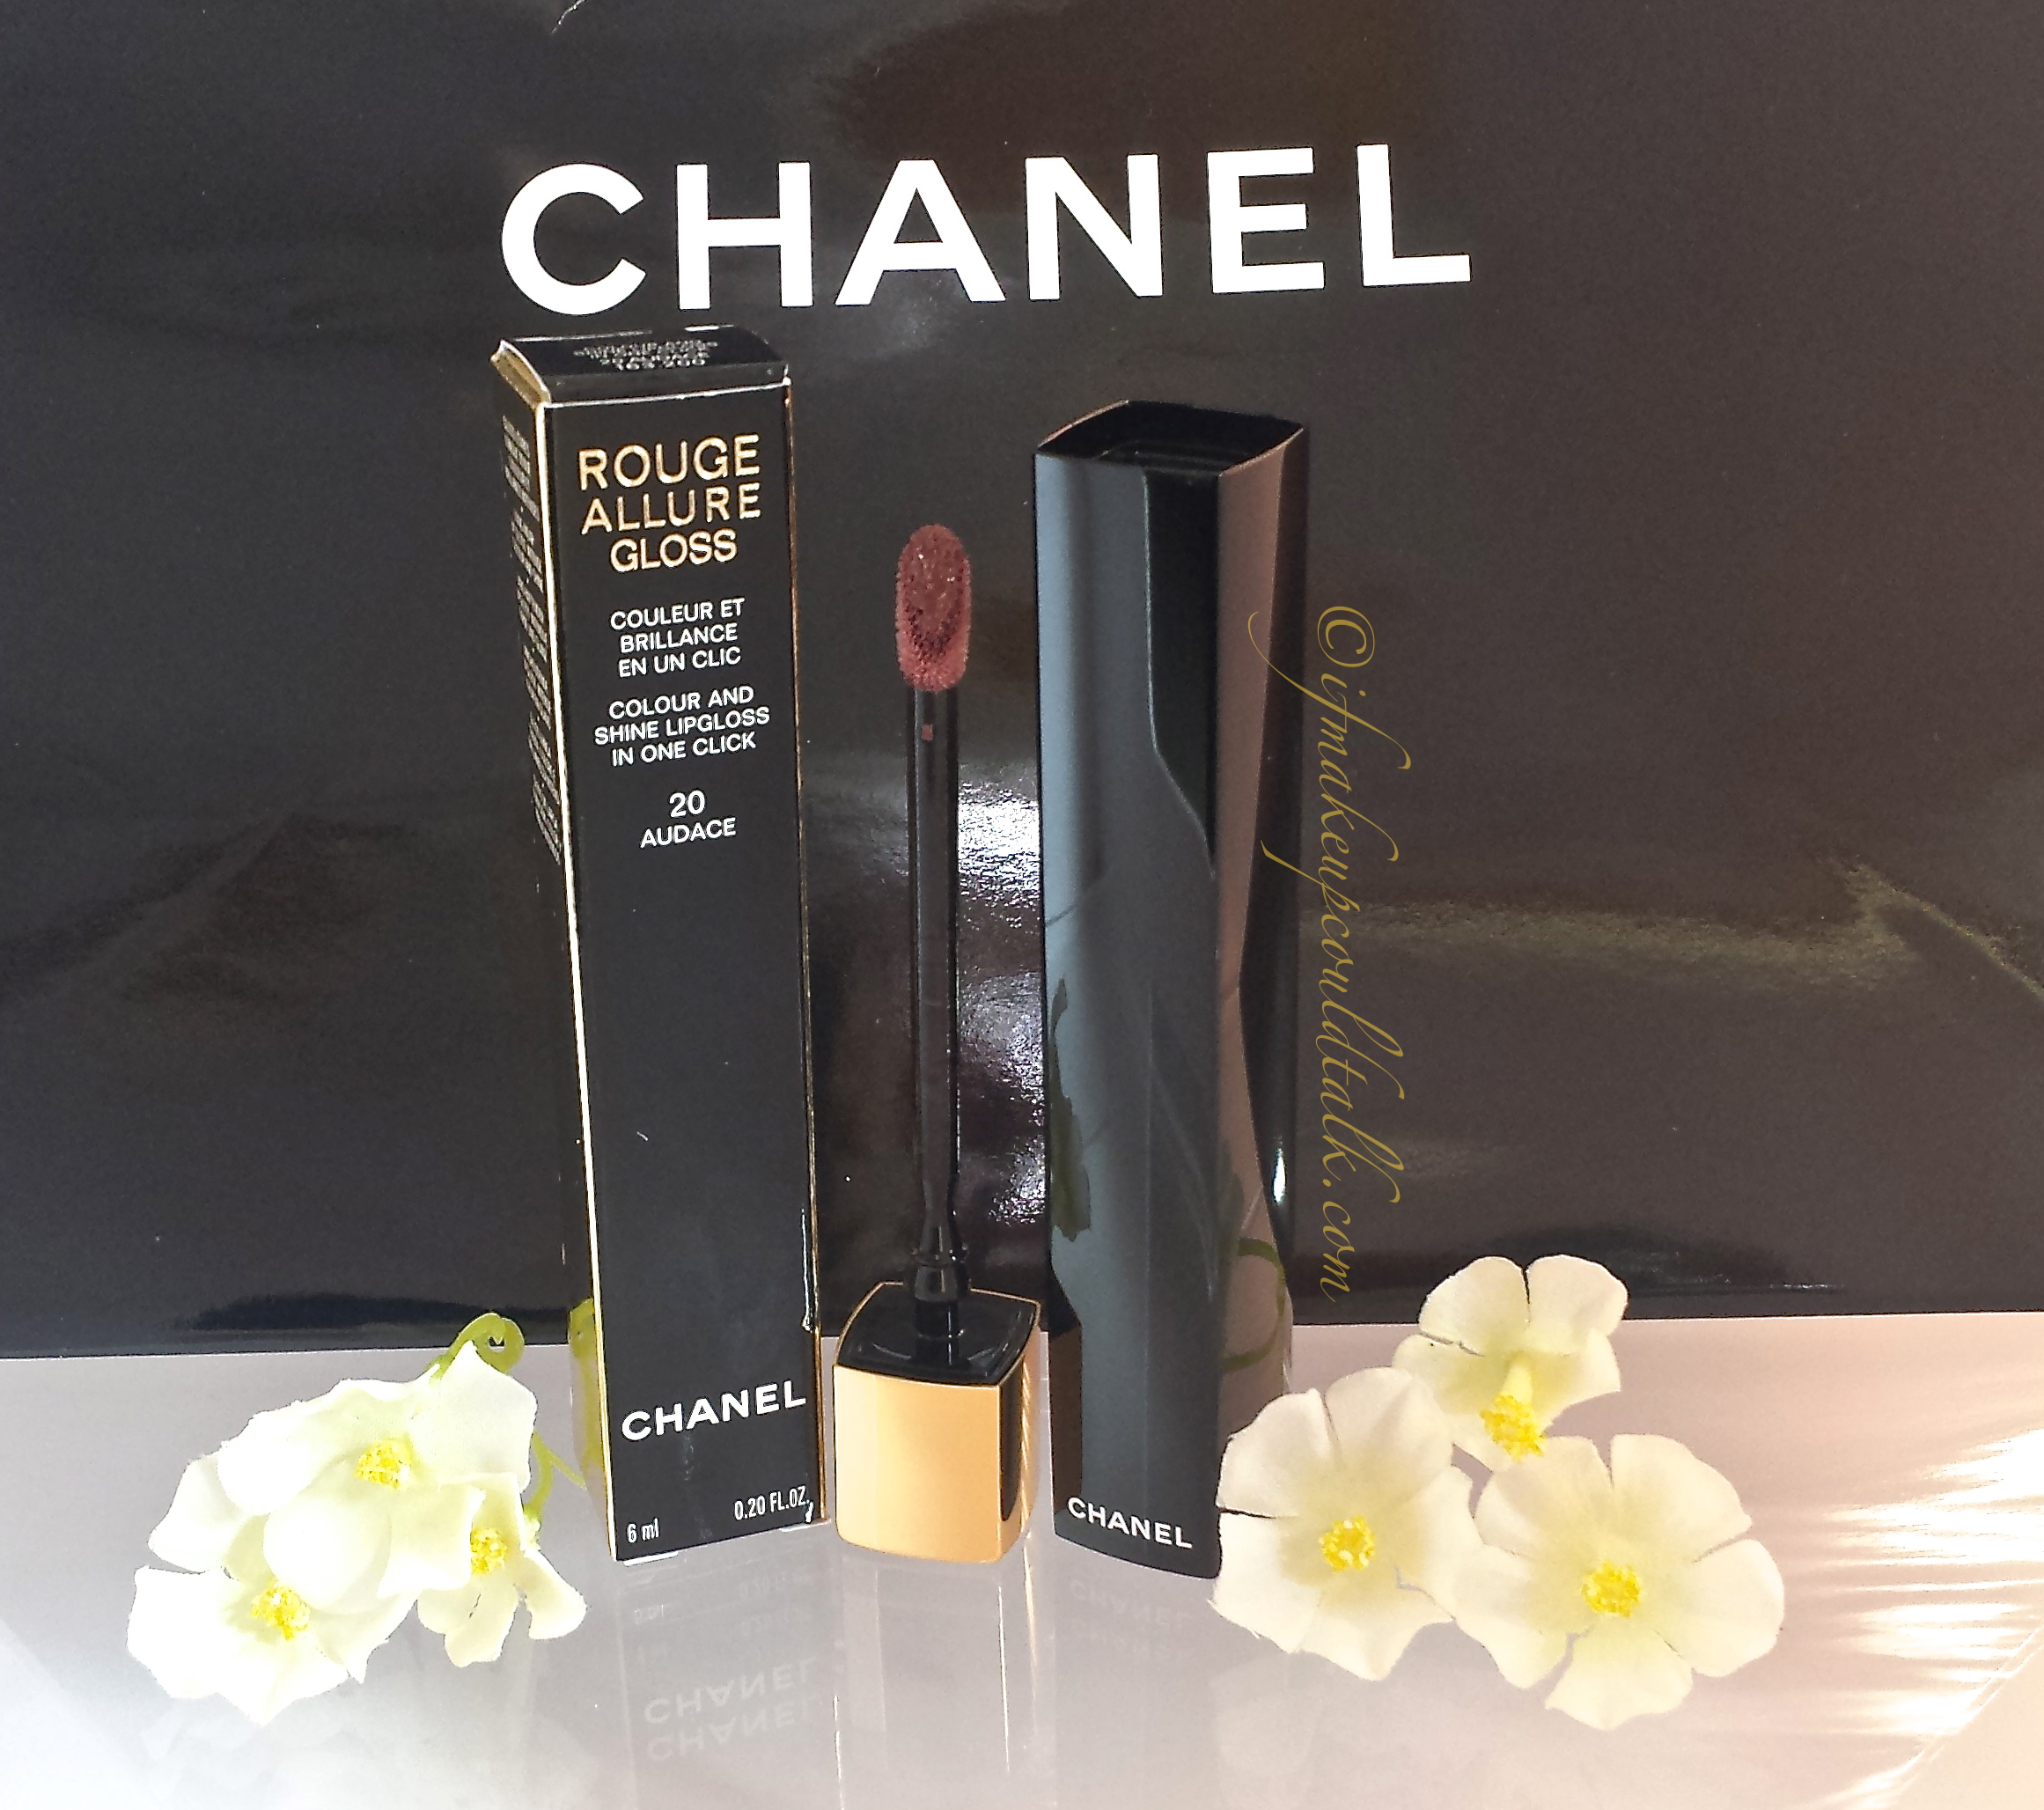 Chanel Rouge Allure Gloss Seduction Chanel Rouge Allure Gloss 20